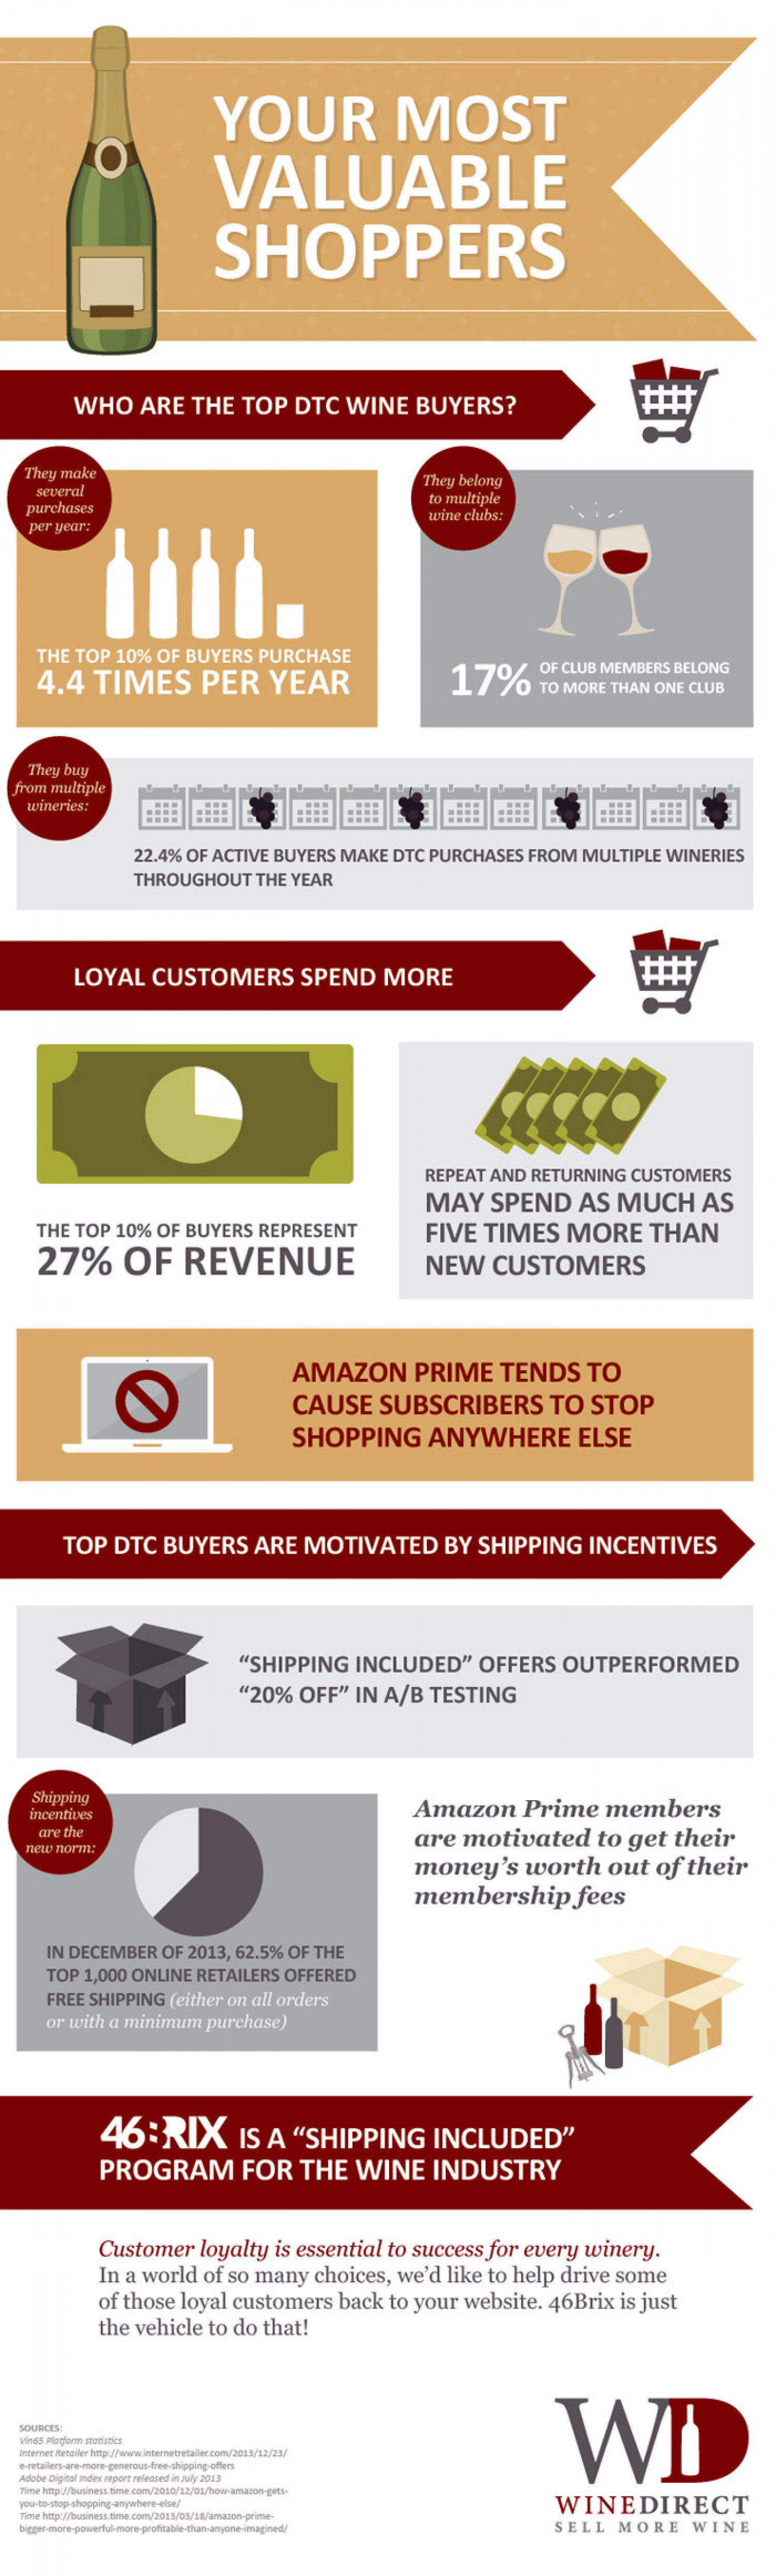 Your Most Valuable Shoppers Infographic